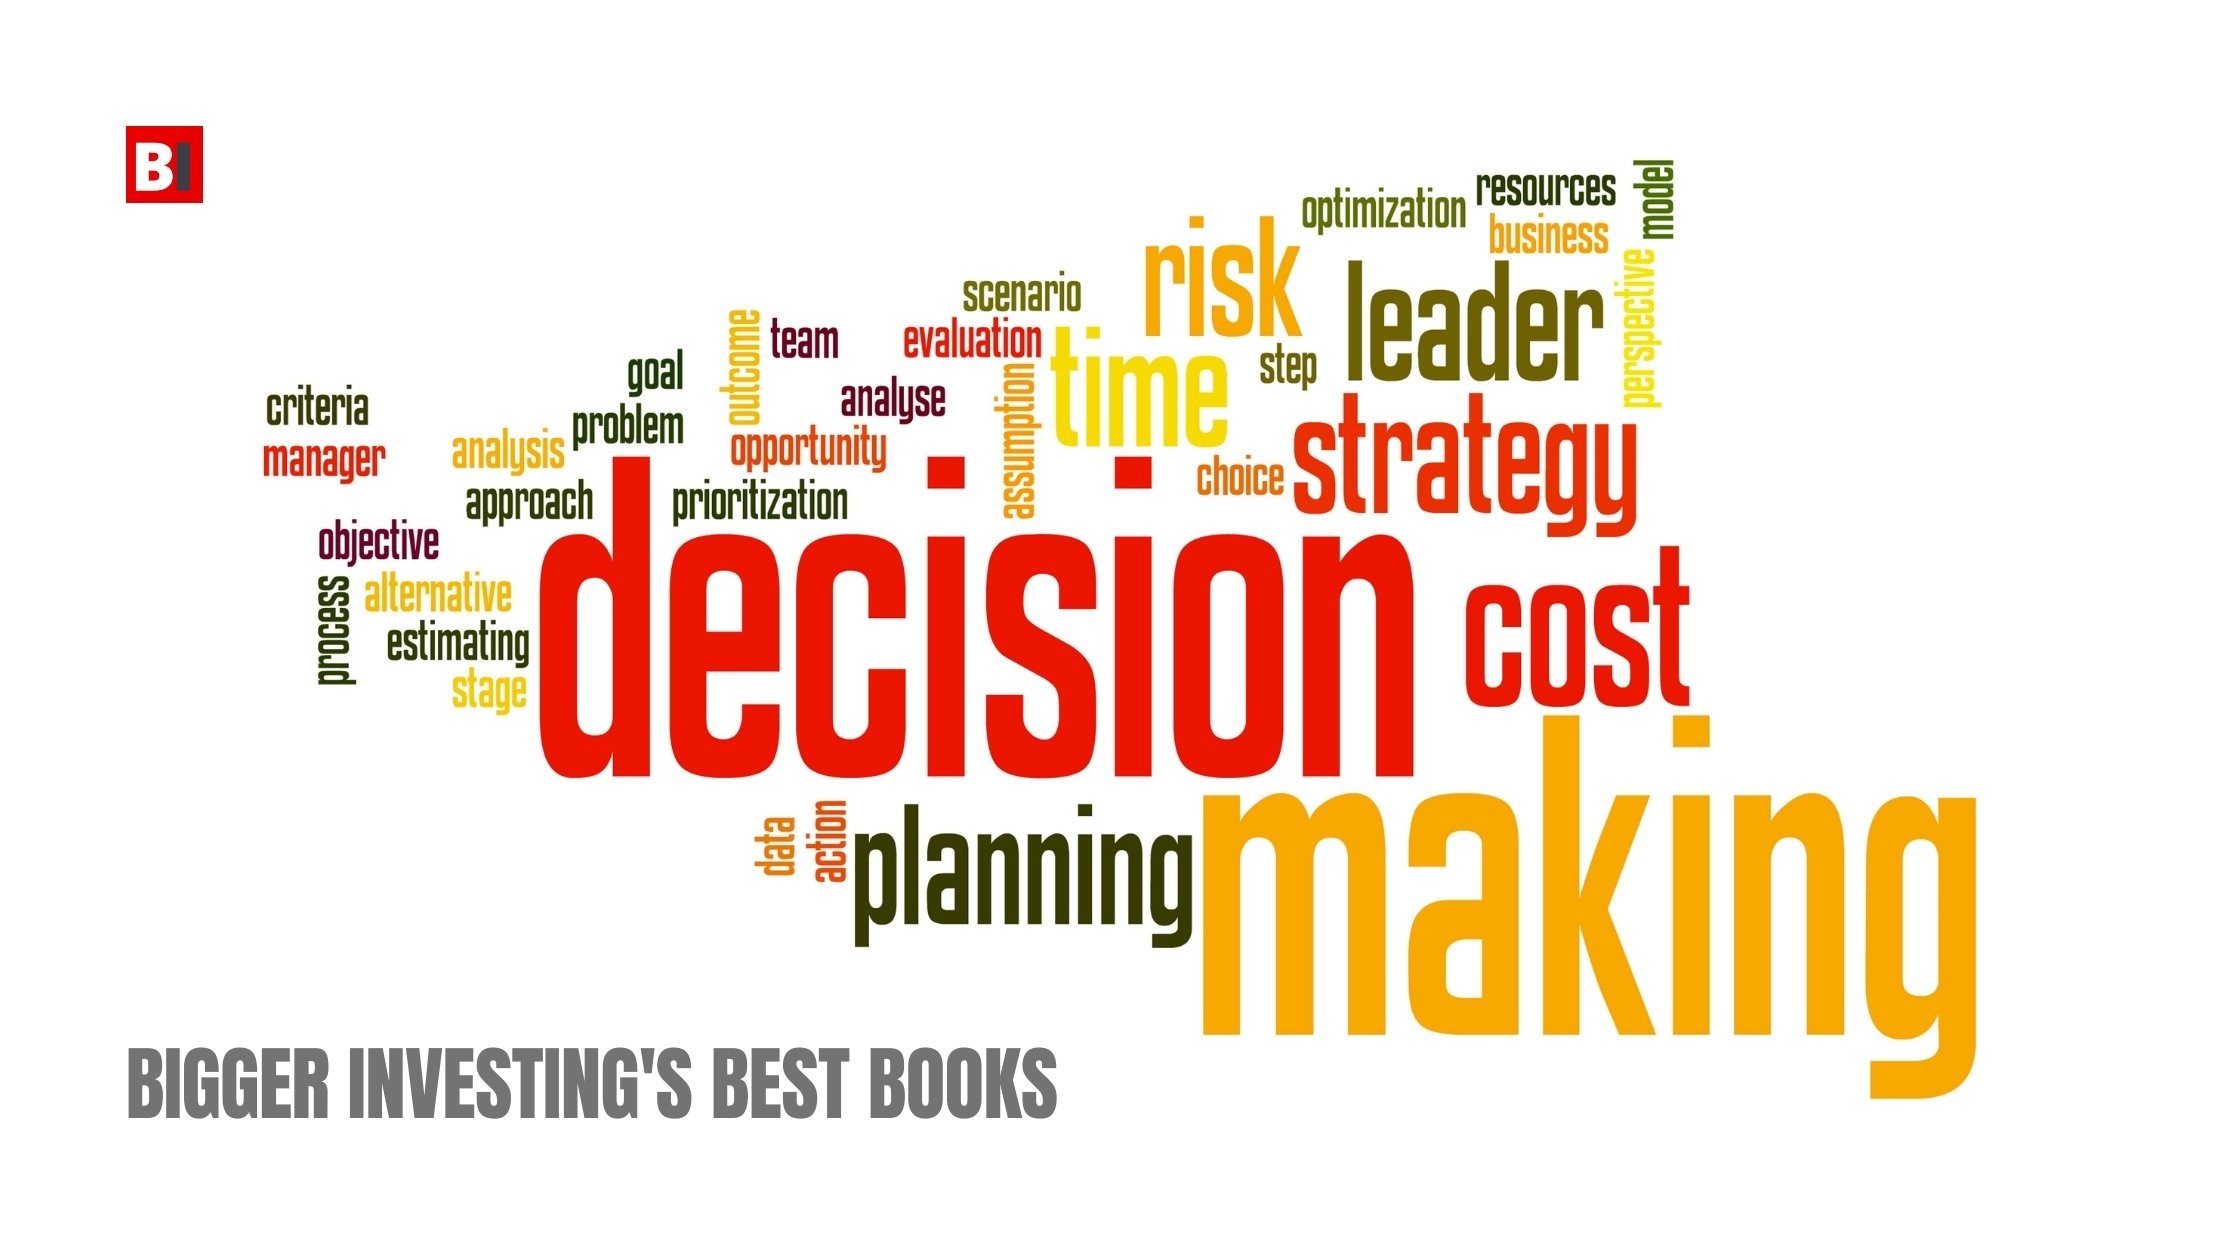 Best Books on Decision Making